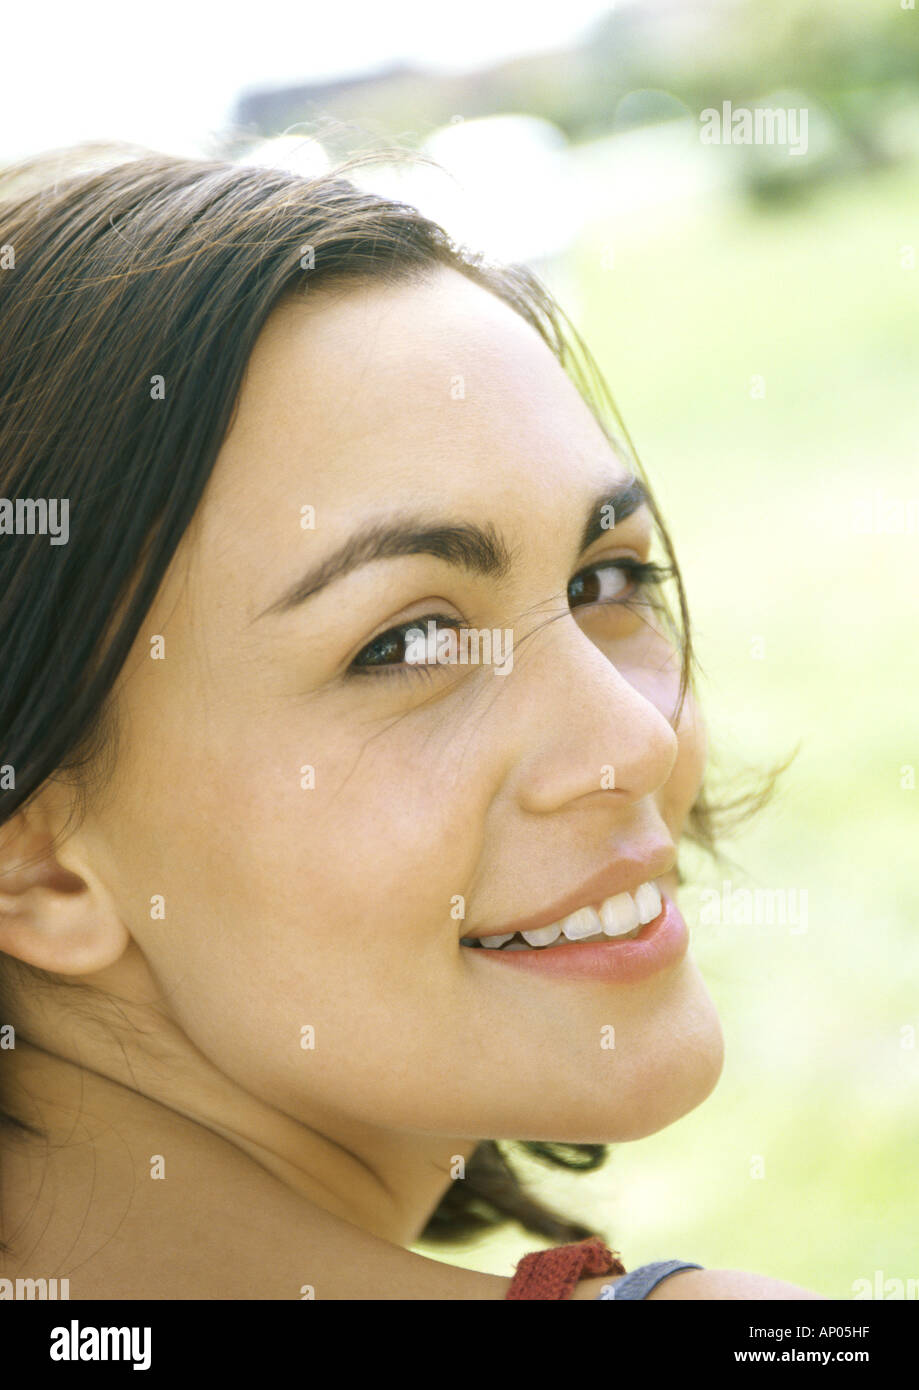 Young woman, looking over shoulder, smiling at camera Stock Photo